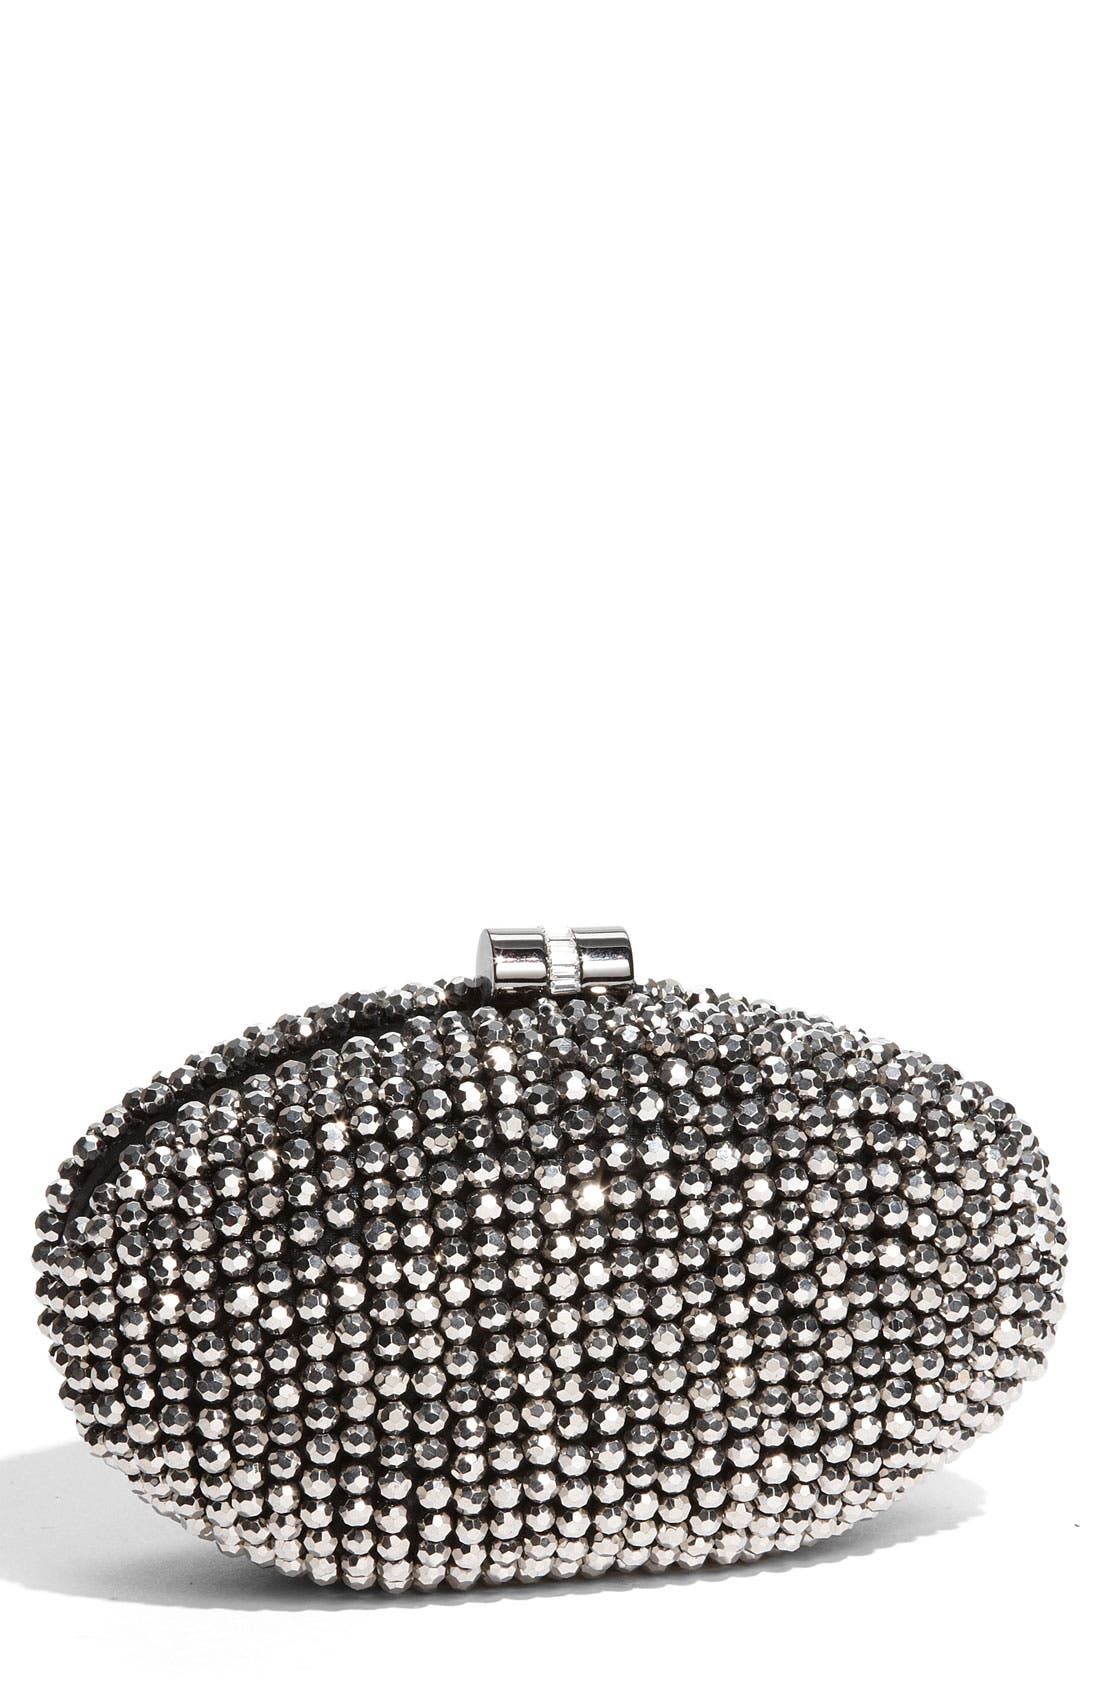 Main Image - Sondra Roberts Beaded Minaudiere Box Clutch